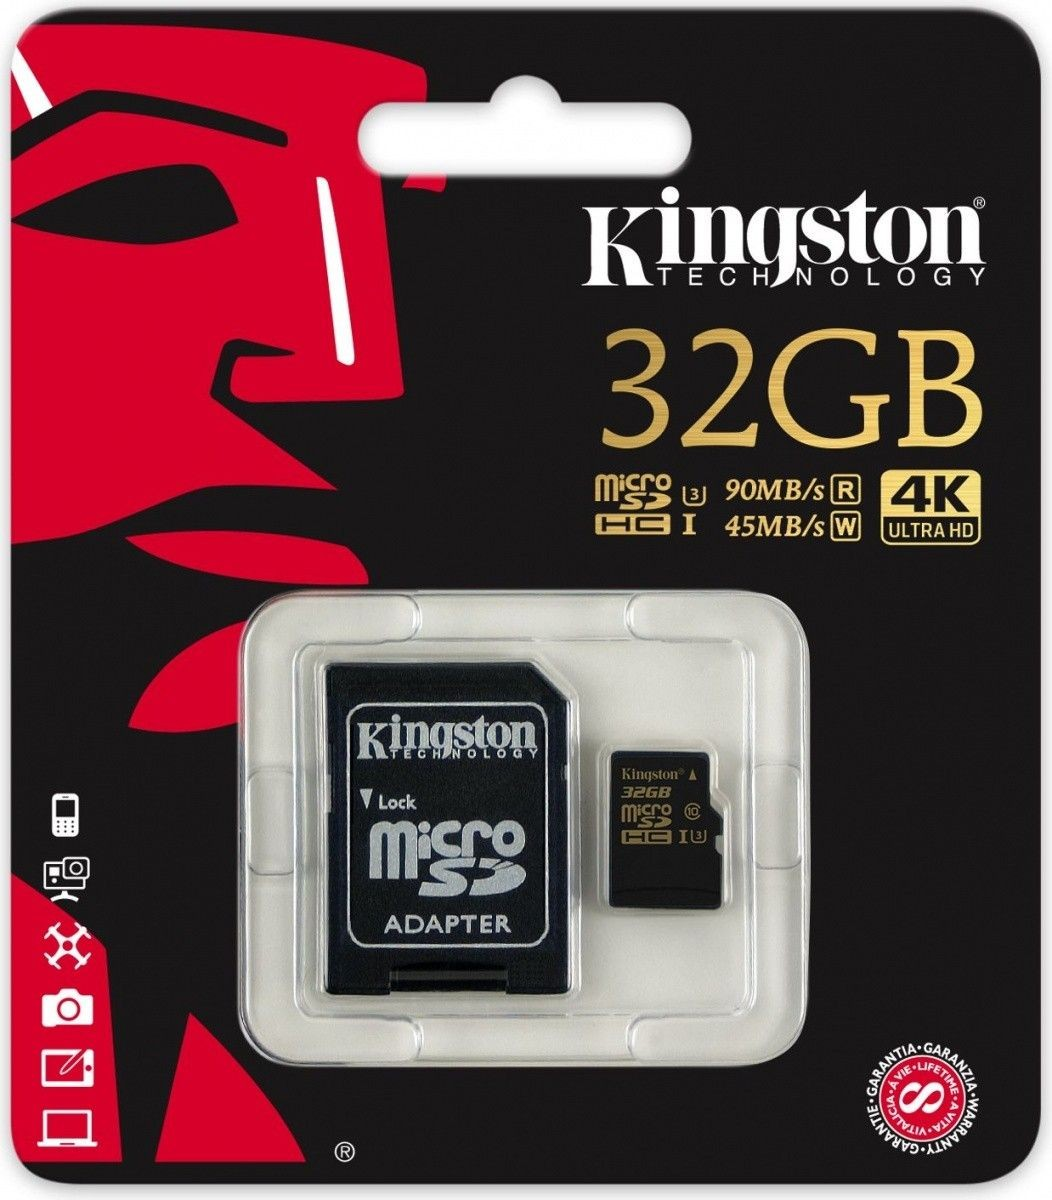 Kingston Karta pamięci Kingston microSDHC 32GB Class 10 UHS-I (U3) (45W/90R MB/s) Gold Series + adapter